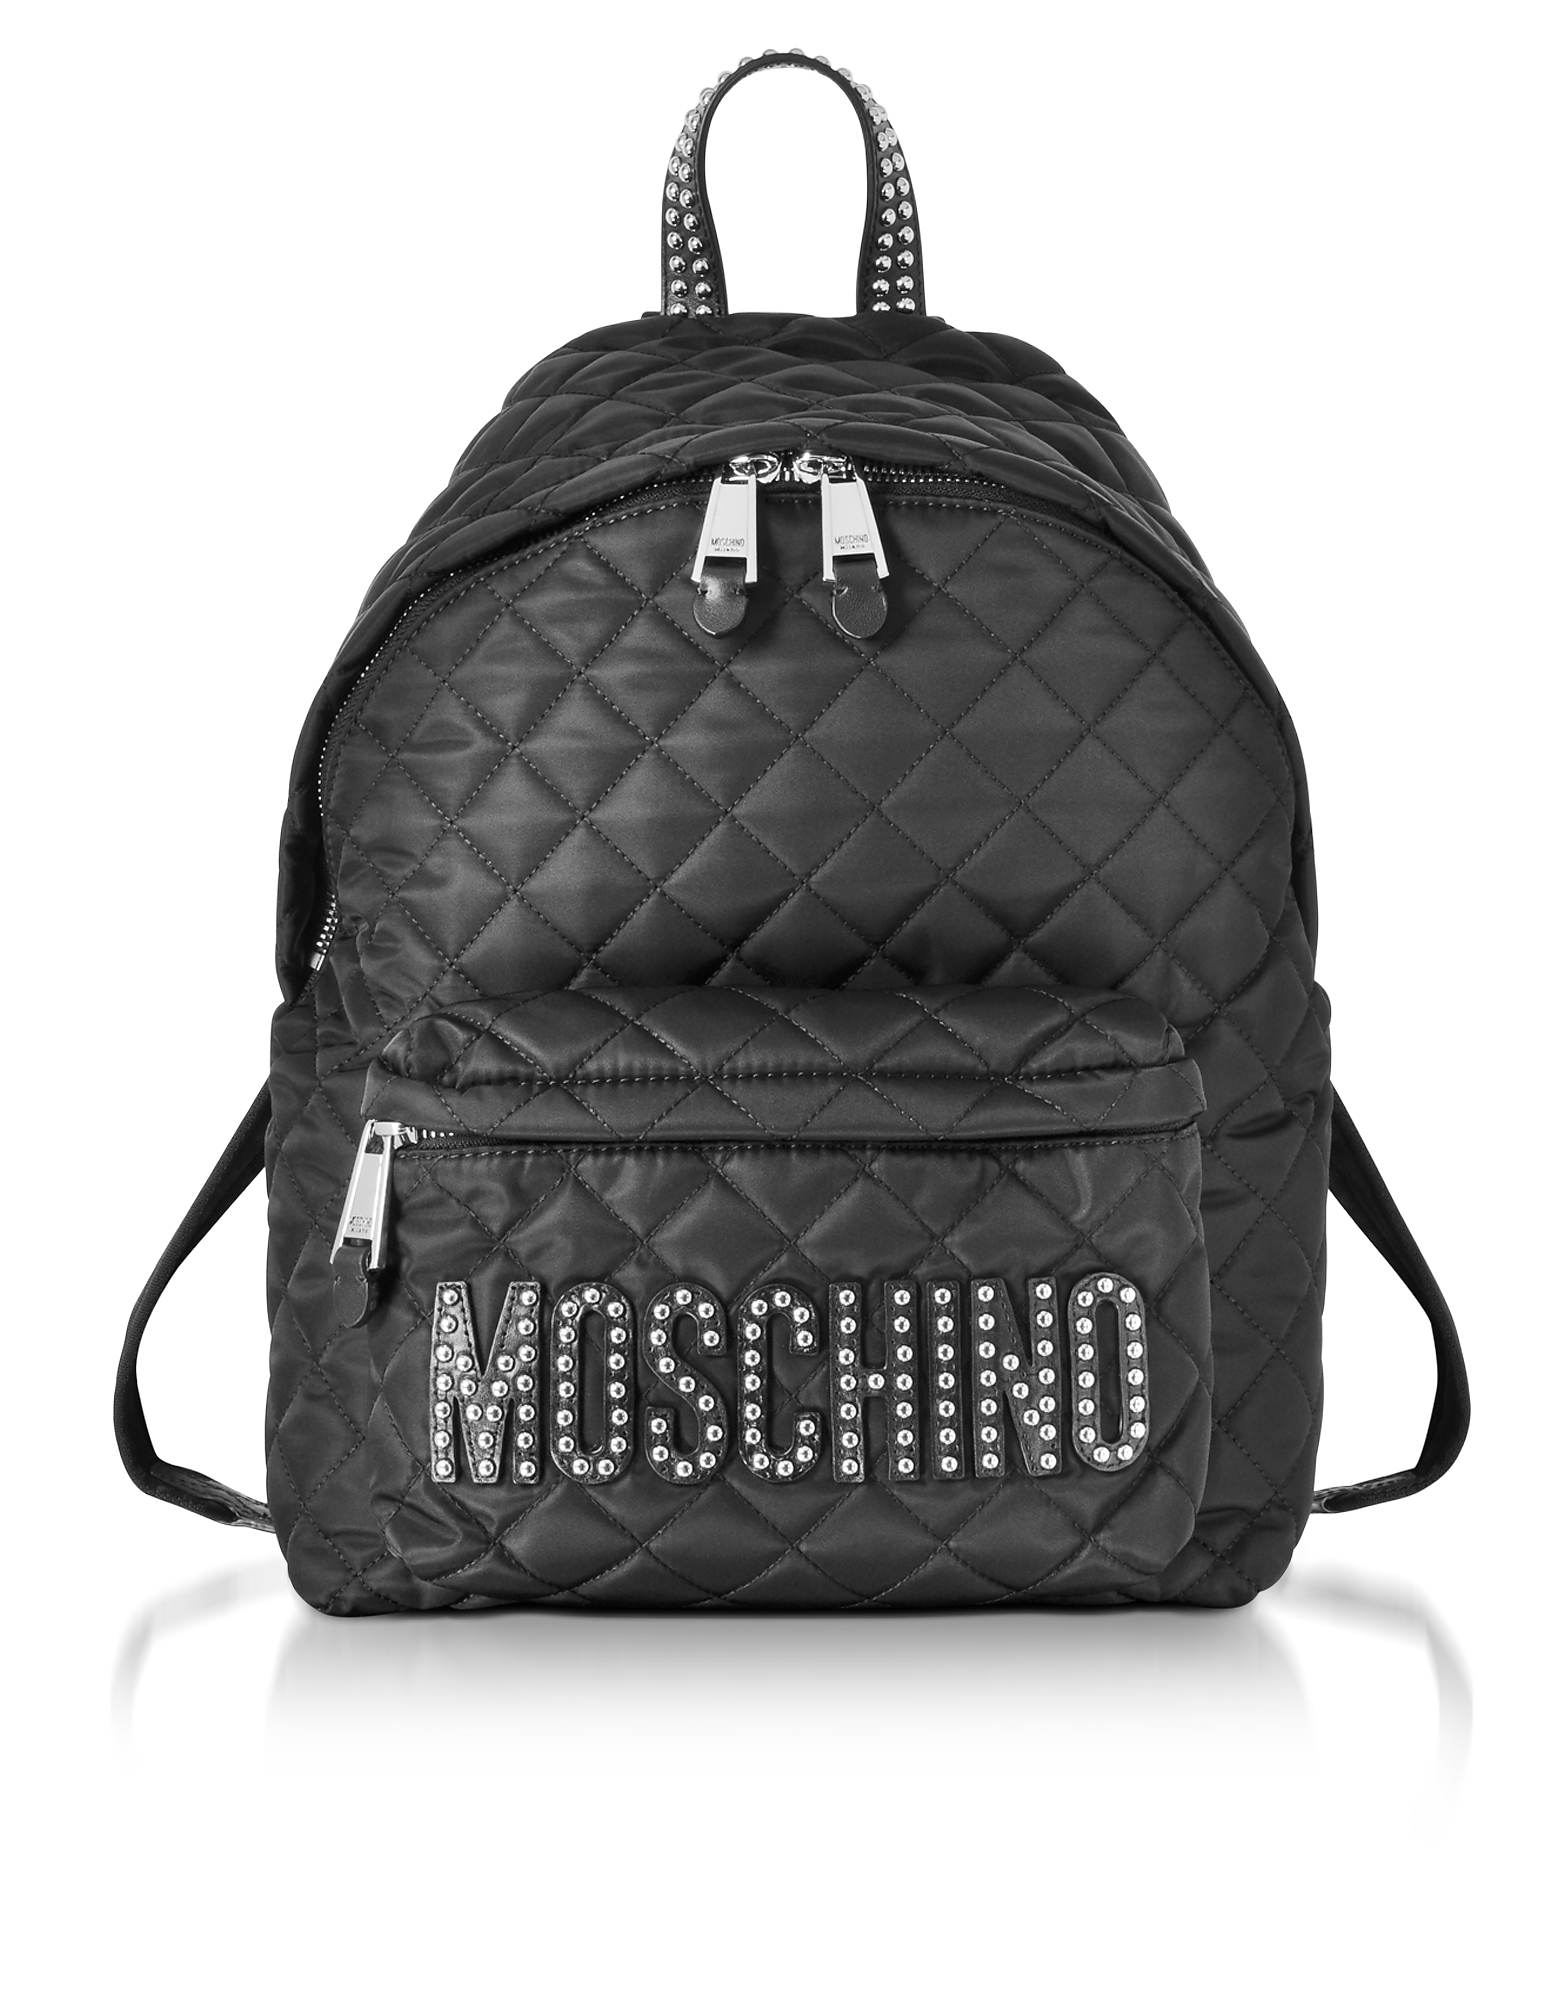 Moschino Handbags, Black Quilted Nylon Backpack w/Studs